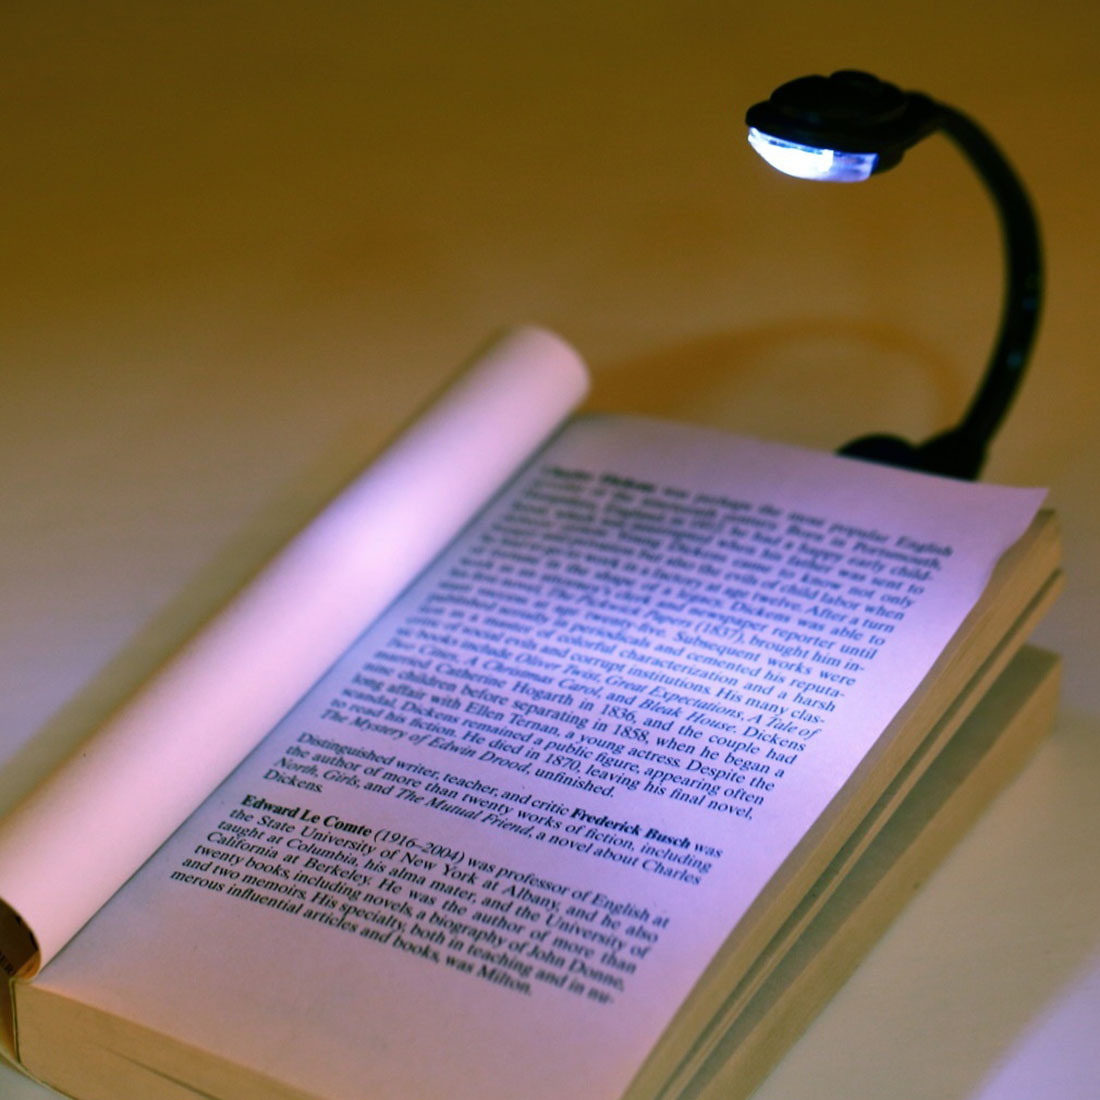 Hot Adjustable Clip Mini Portable LED Book Reading Light Lamp Flexible USB Novelty Light For Laptop PC Music Stand Light Lamp